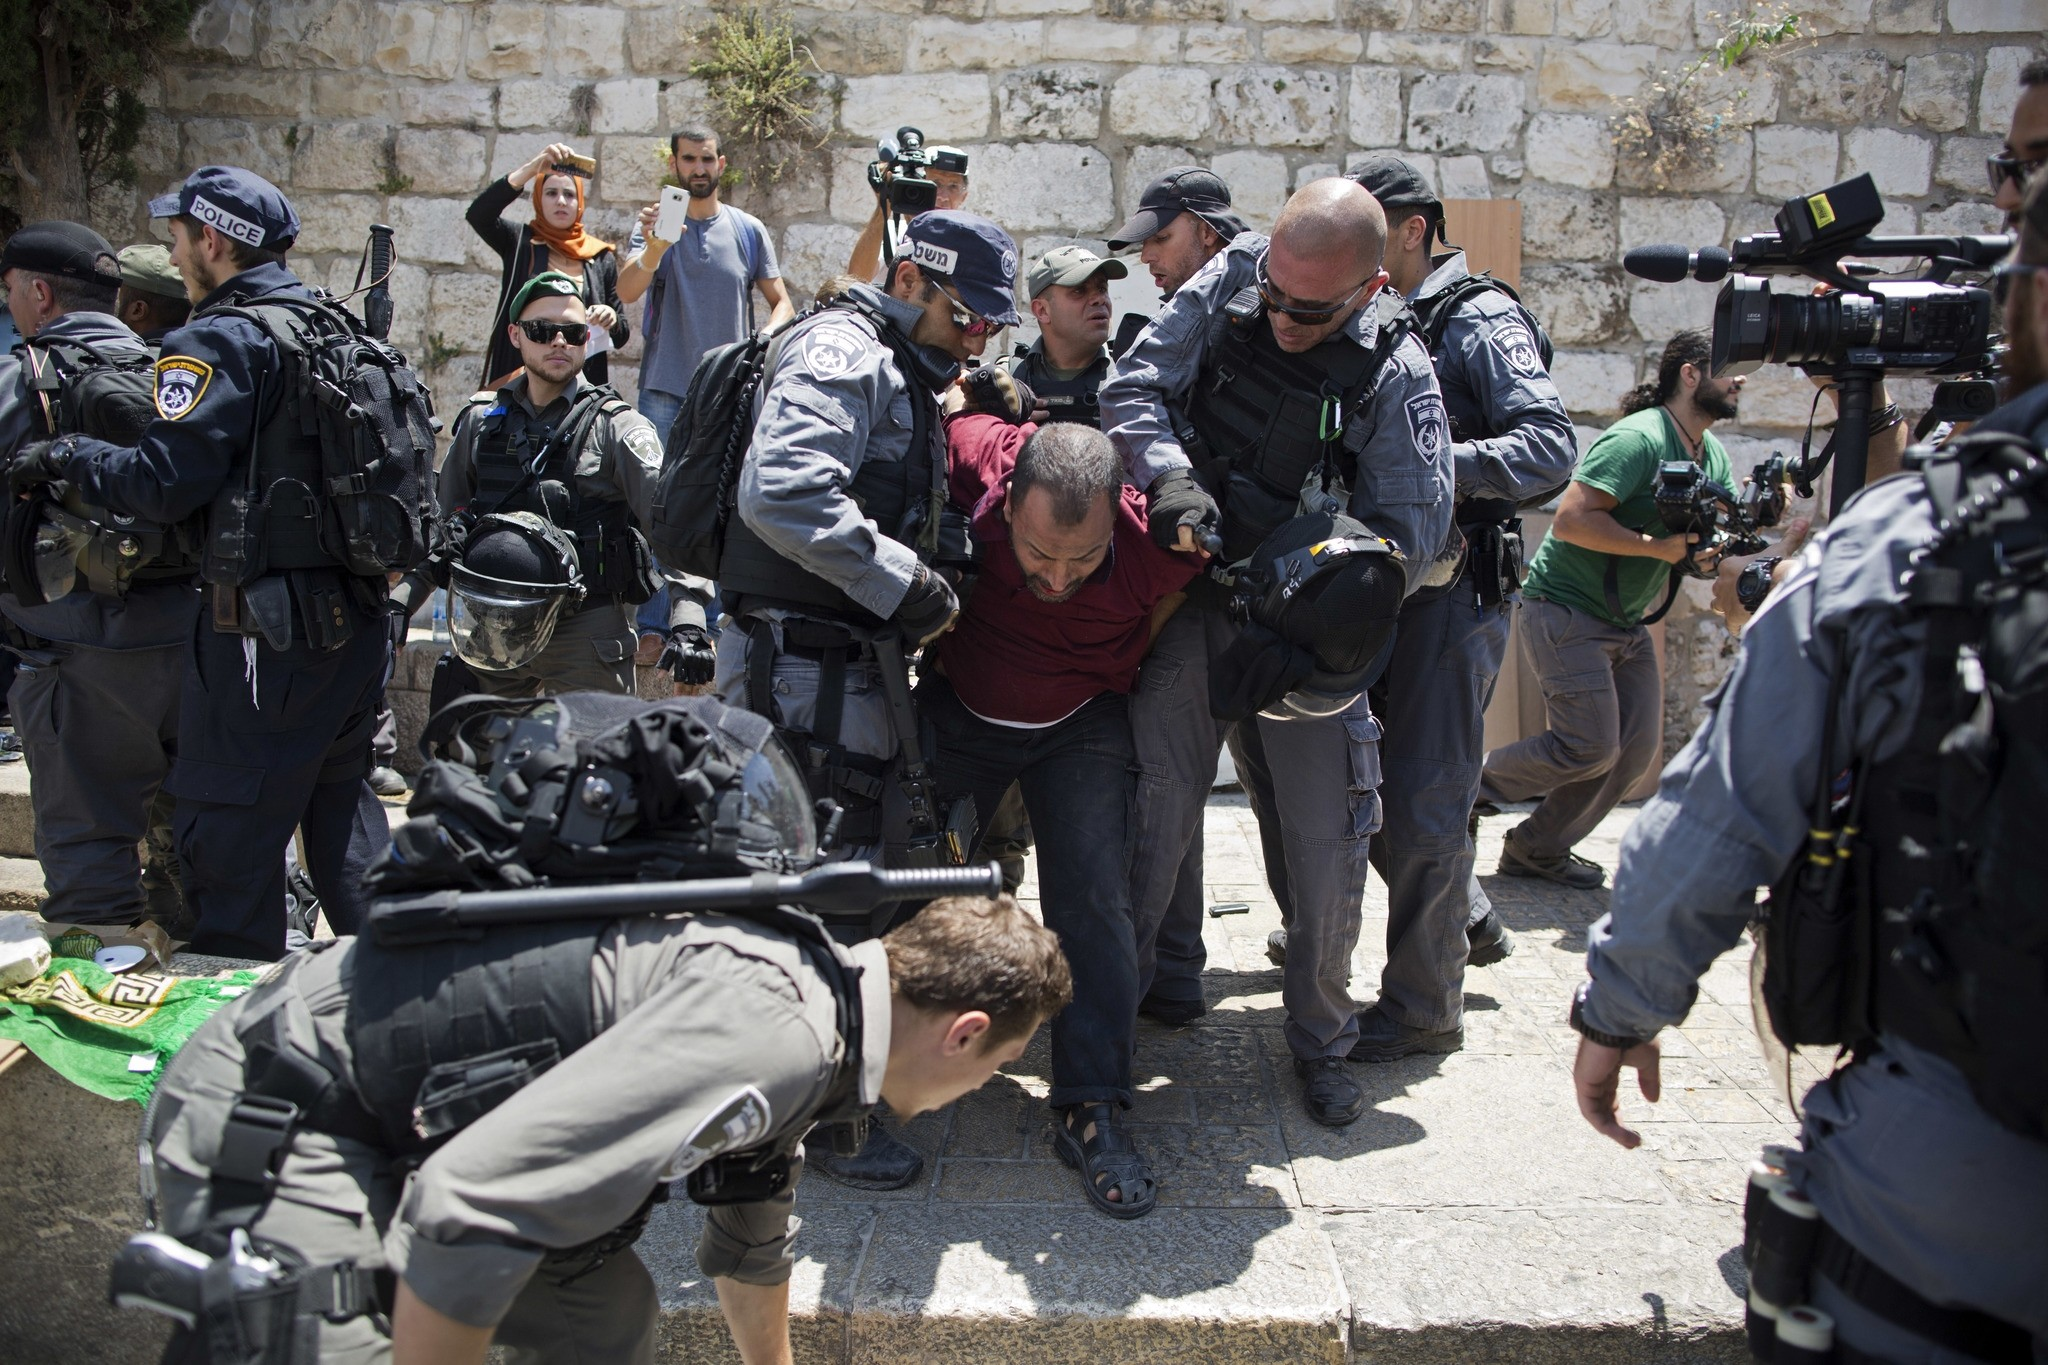 Israeli police officers detain a Palestinian man outside the Lion's Gate, following an appeal from clerics to pray in the streets instead of the Al Aqsa Mosque compound, in Jerusalem's Old City, Wednesday, July 19, 2017. (AP Photo)